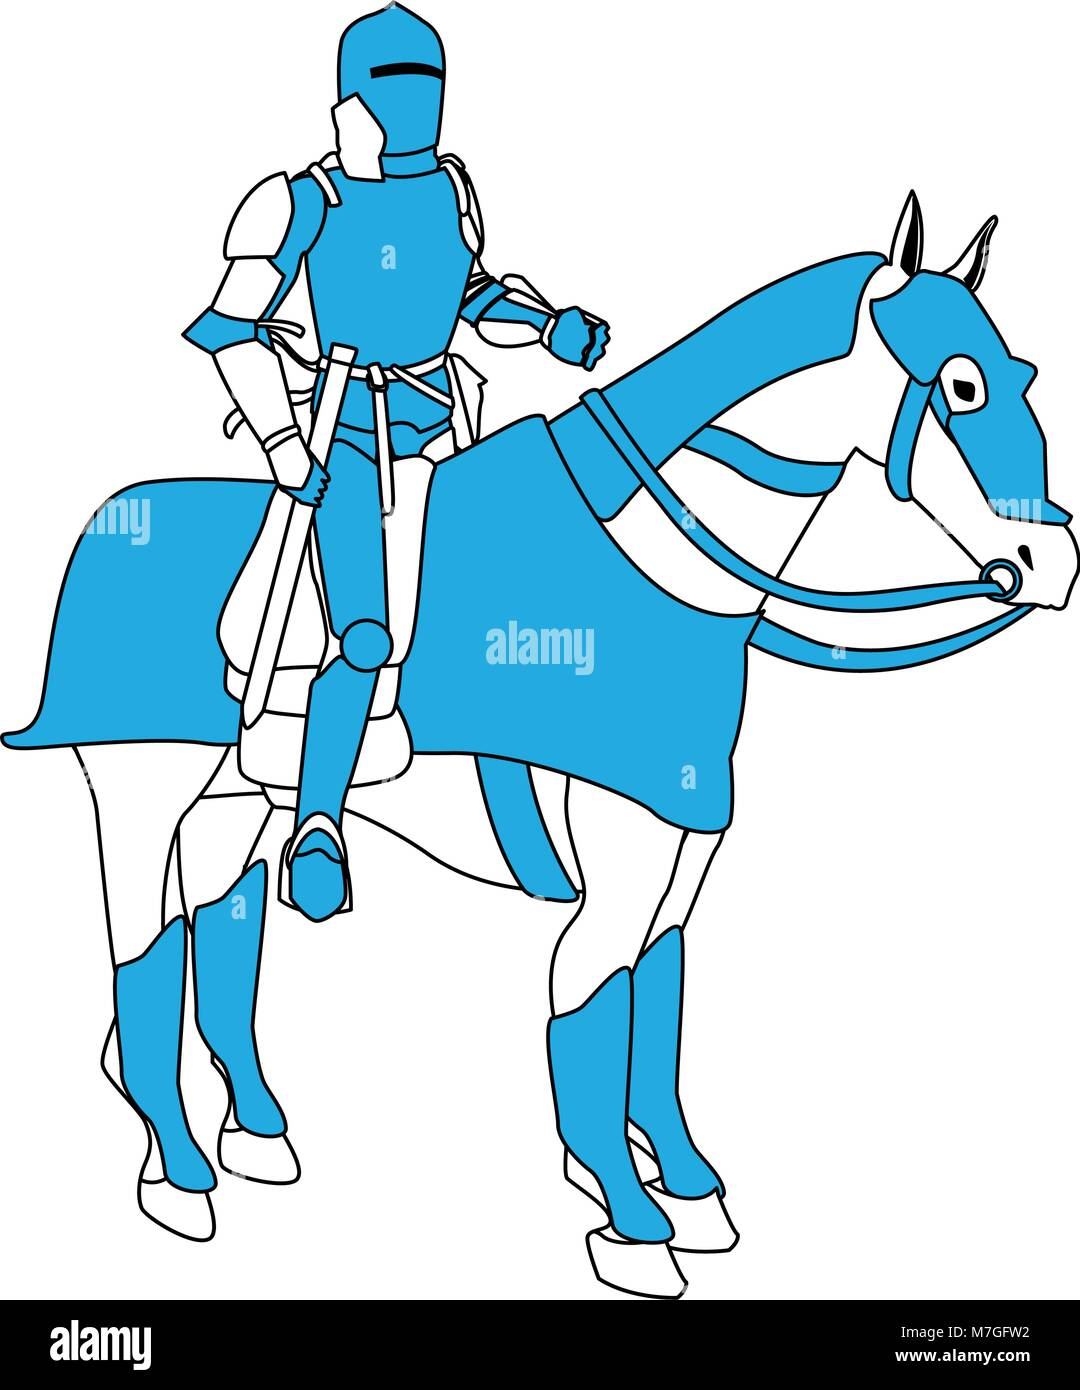 Medieval Warrior On Horse Vector Illustration Graphic Design Stock Vector Image Art Alamy